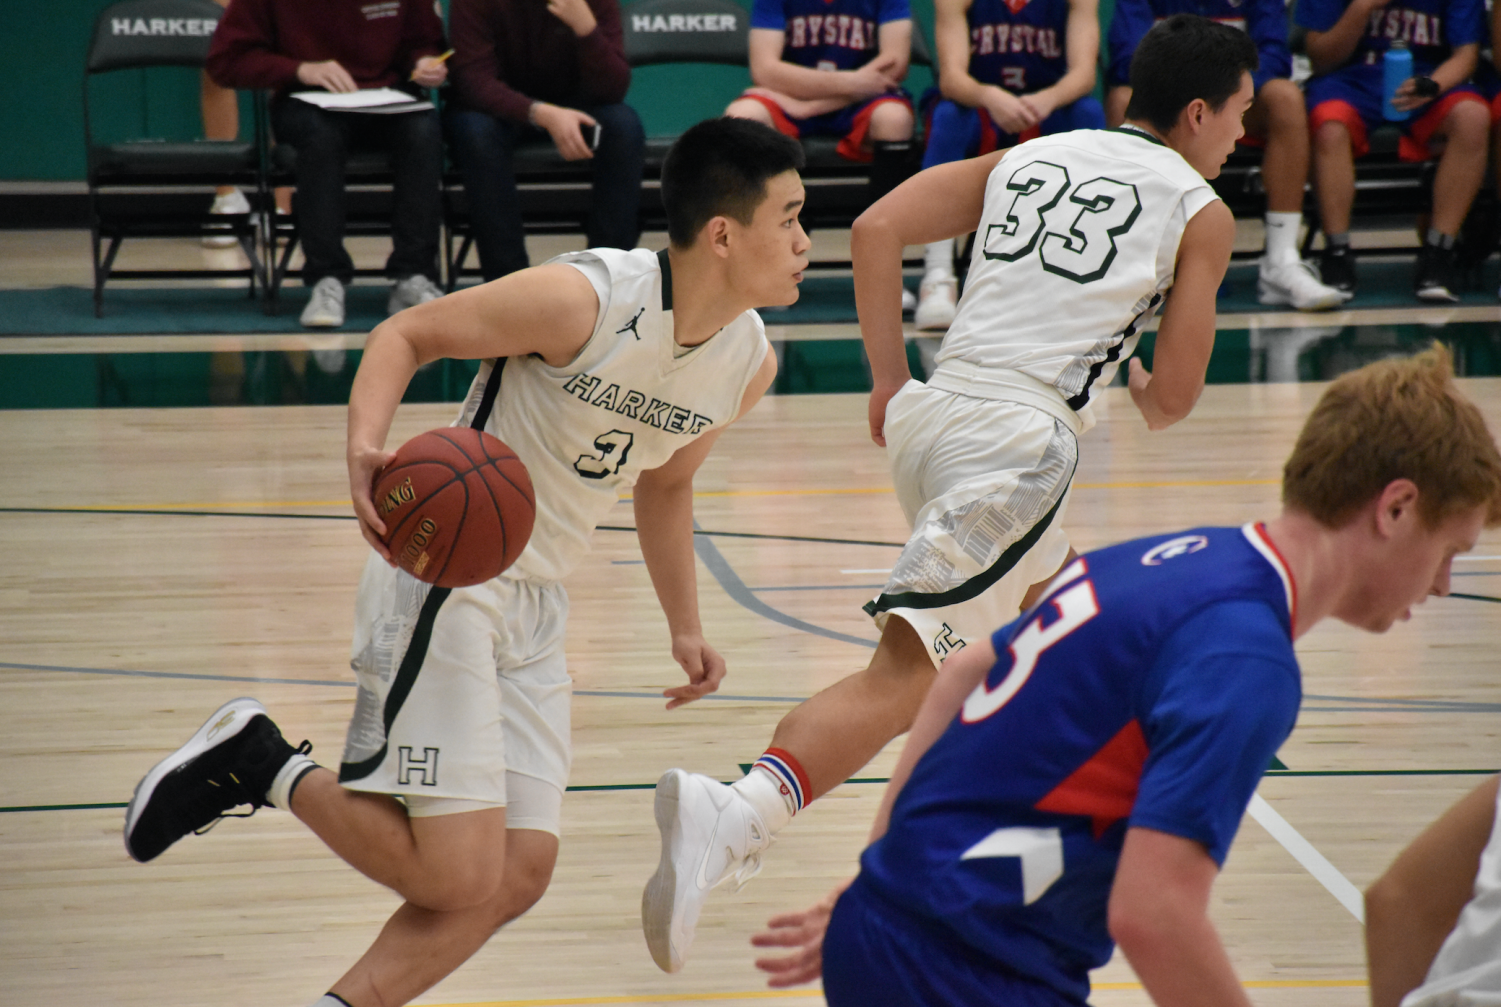 Junior Gene Wang dribbles across the court in the home game against Crystal Springs Uplands. They won the game by a margin of 36 points.